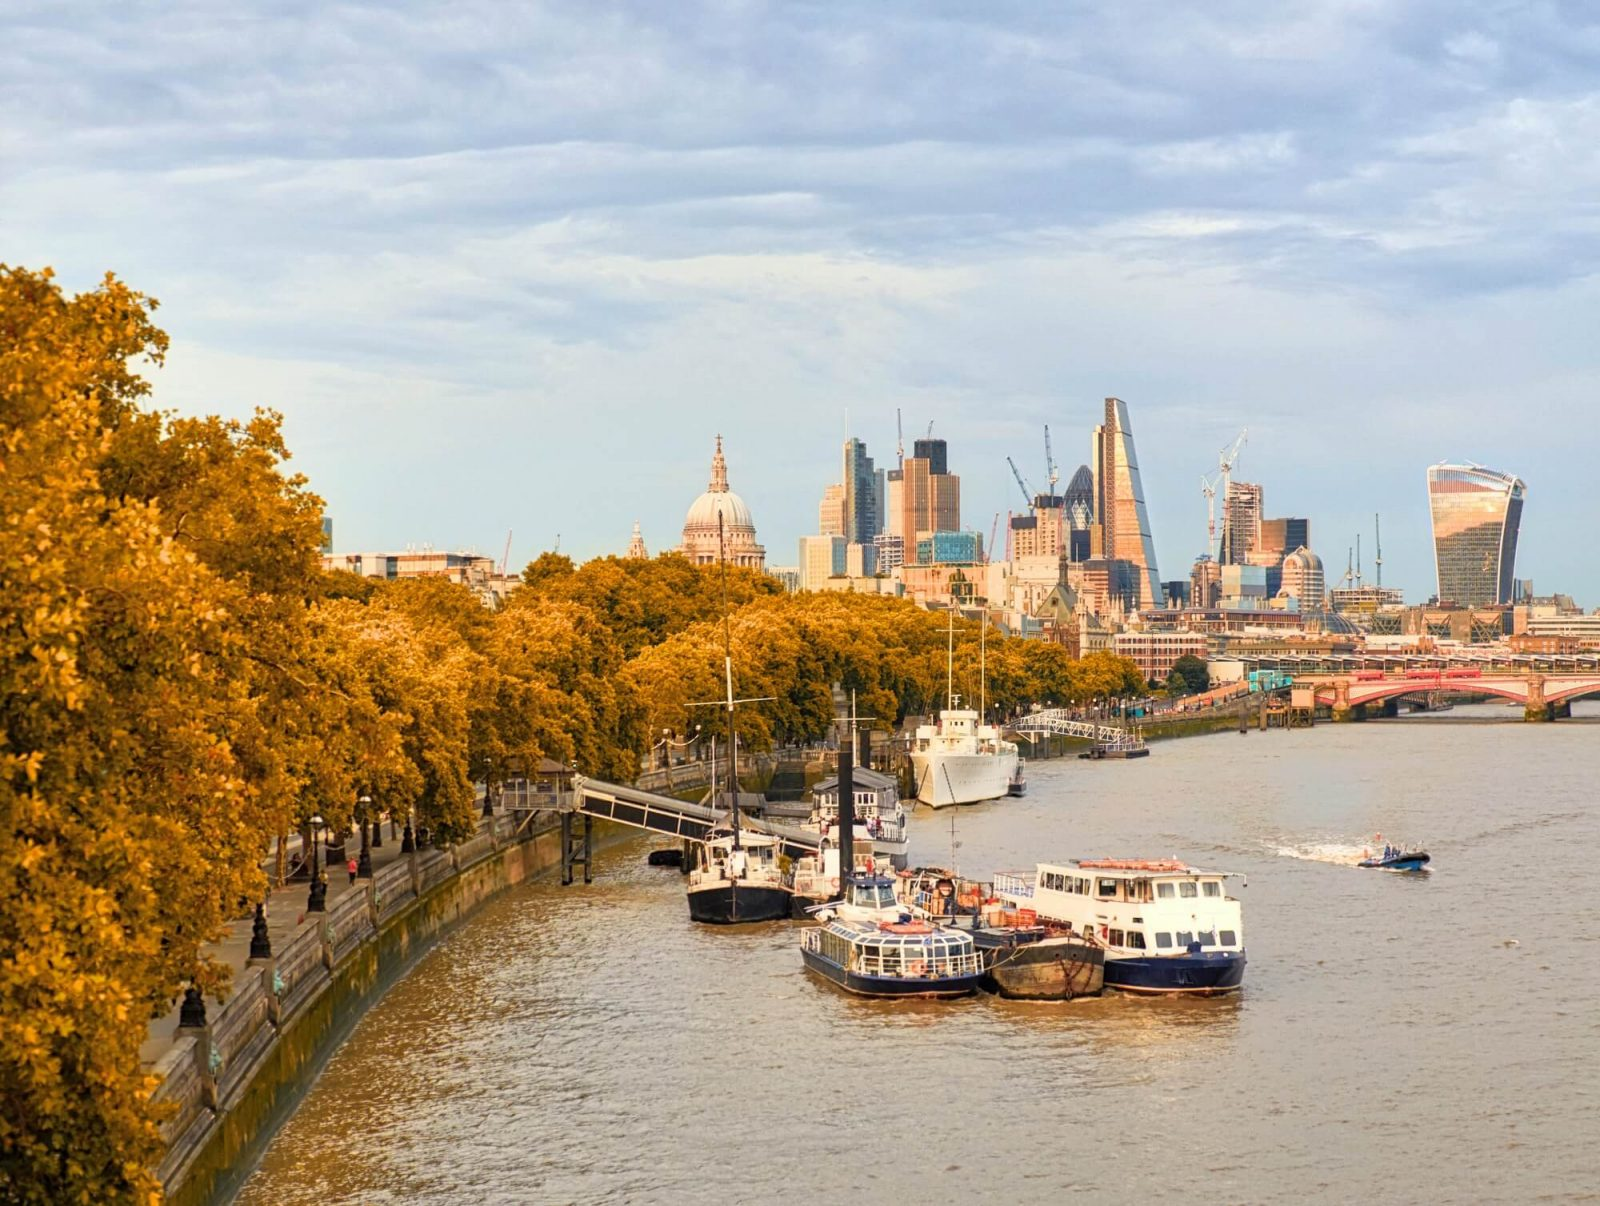 london streets during autumn